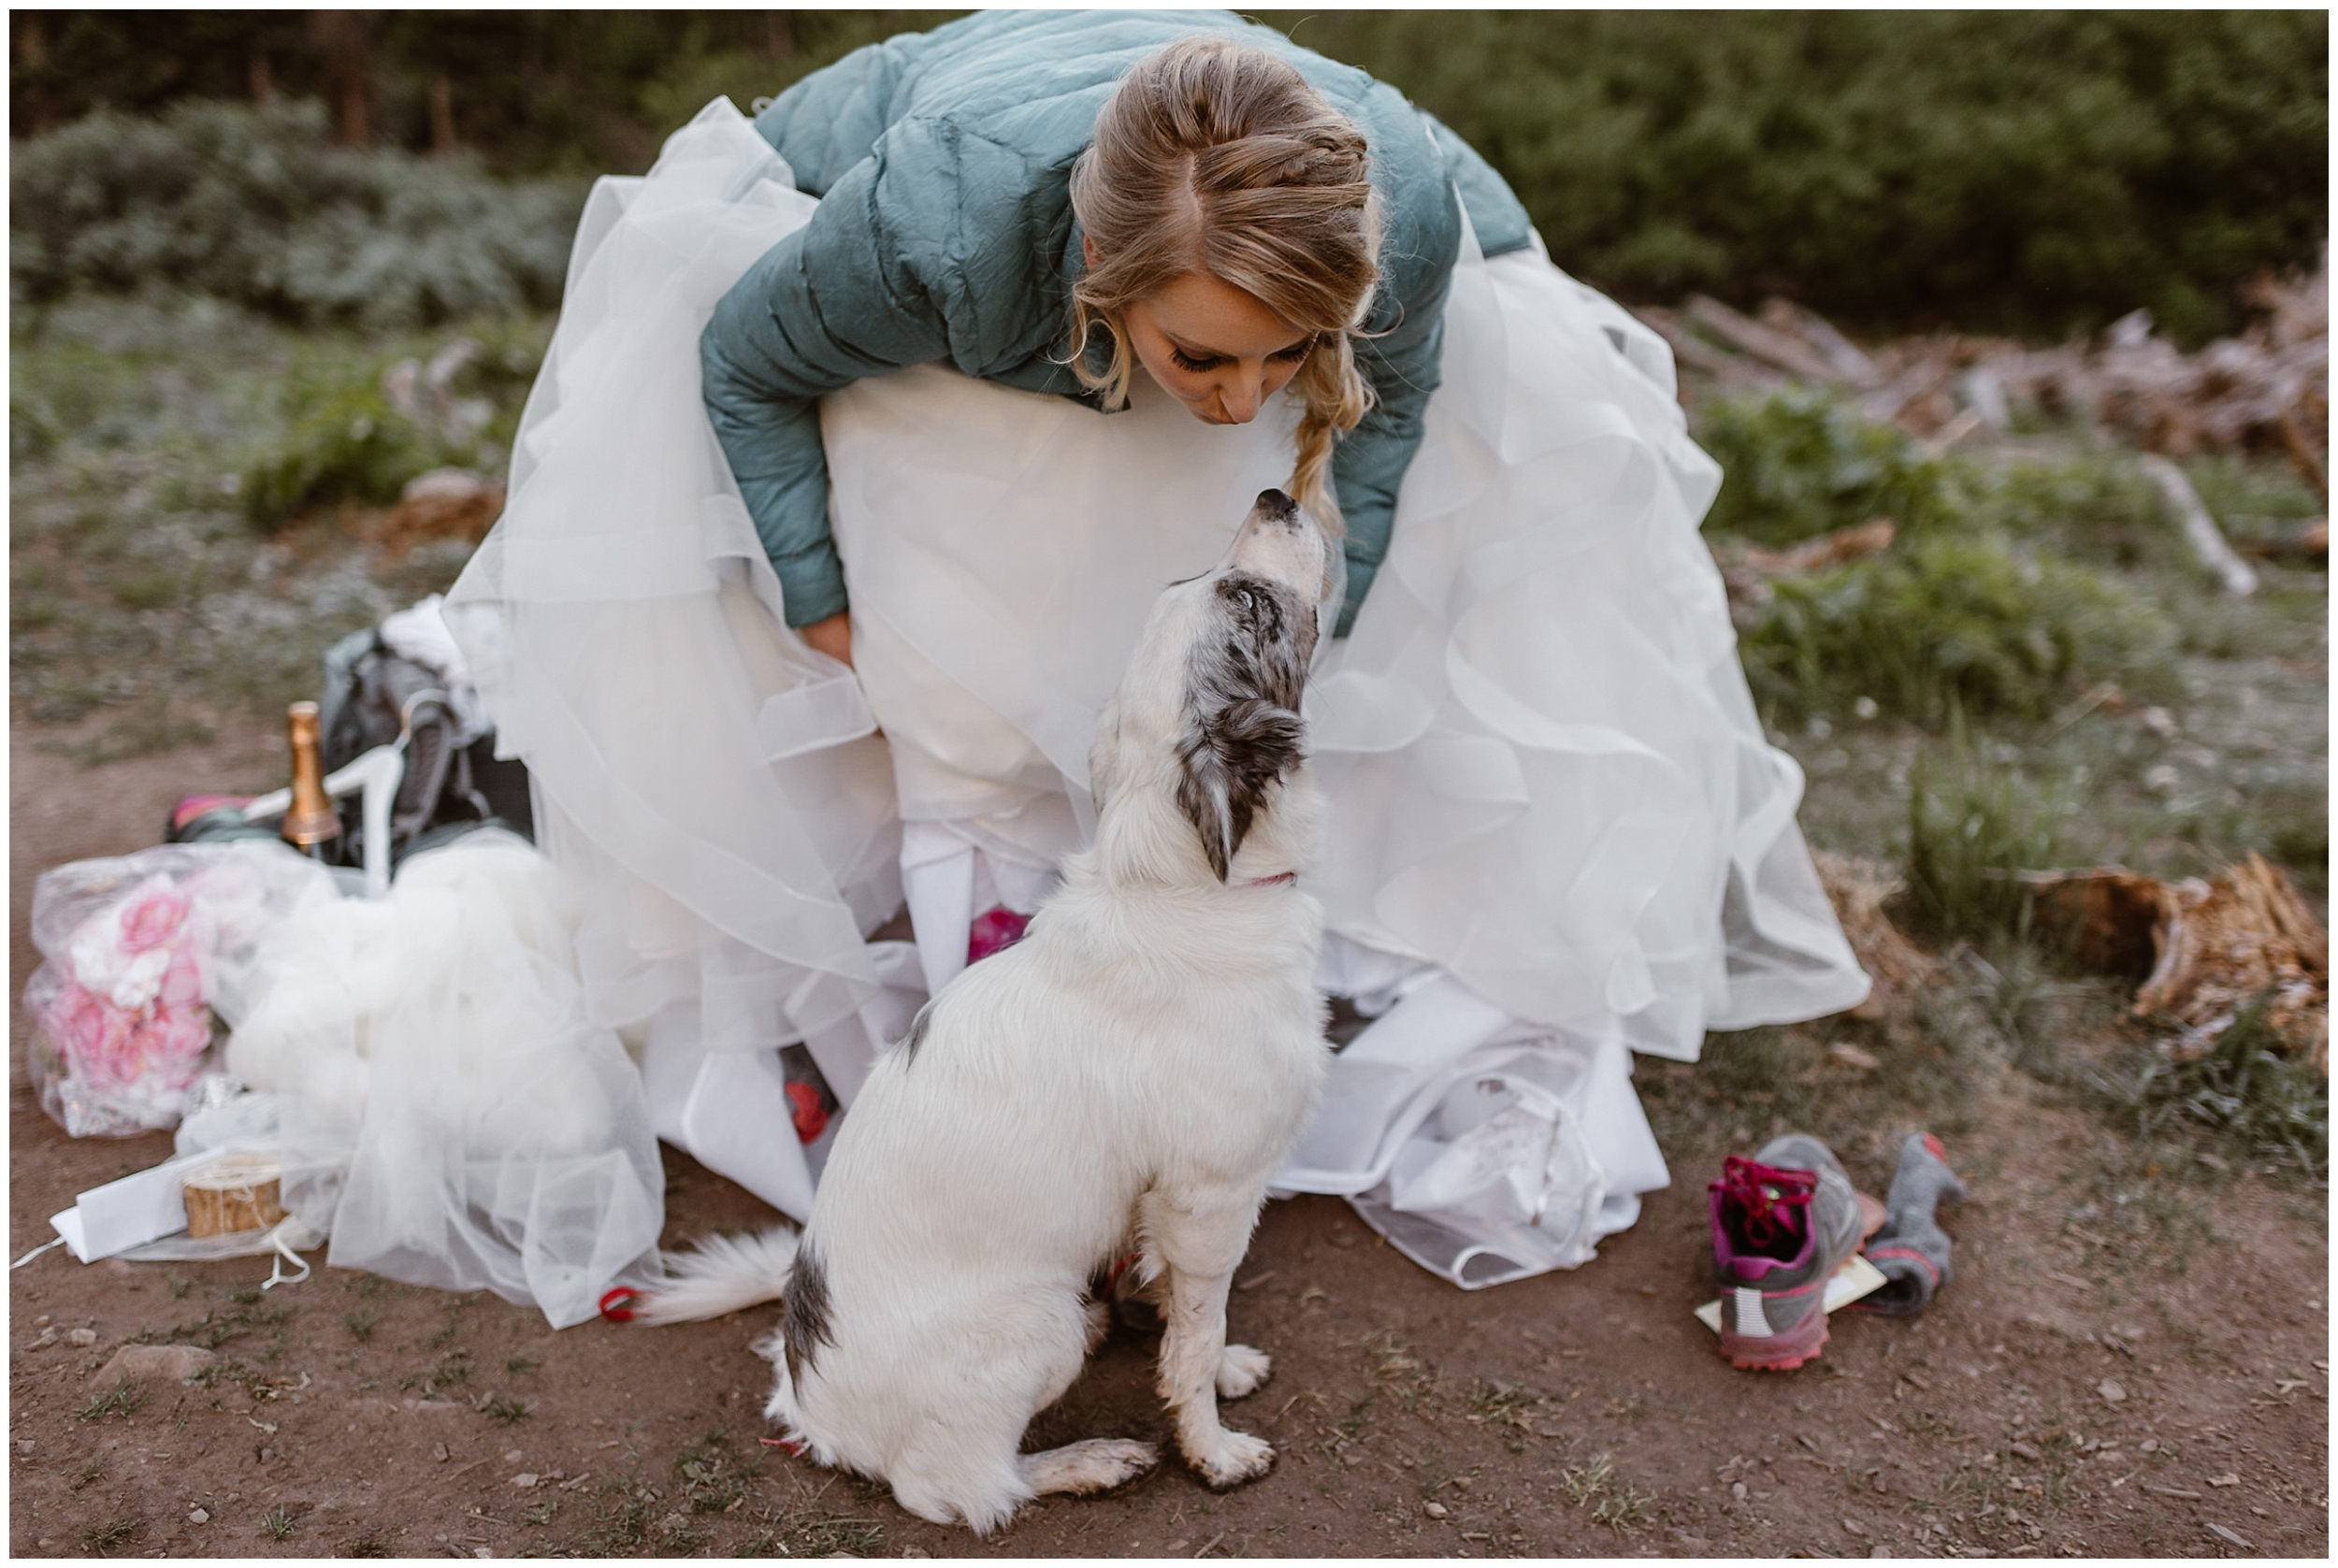 A bride an dog are featured in this elopement photo captured by Adventure Instead, an elopement photographer. The bride leans down over her fluffy dress to make a kissing face at her white and grey pup.